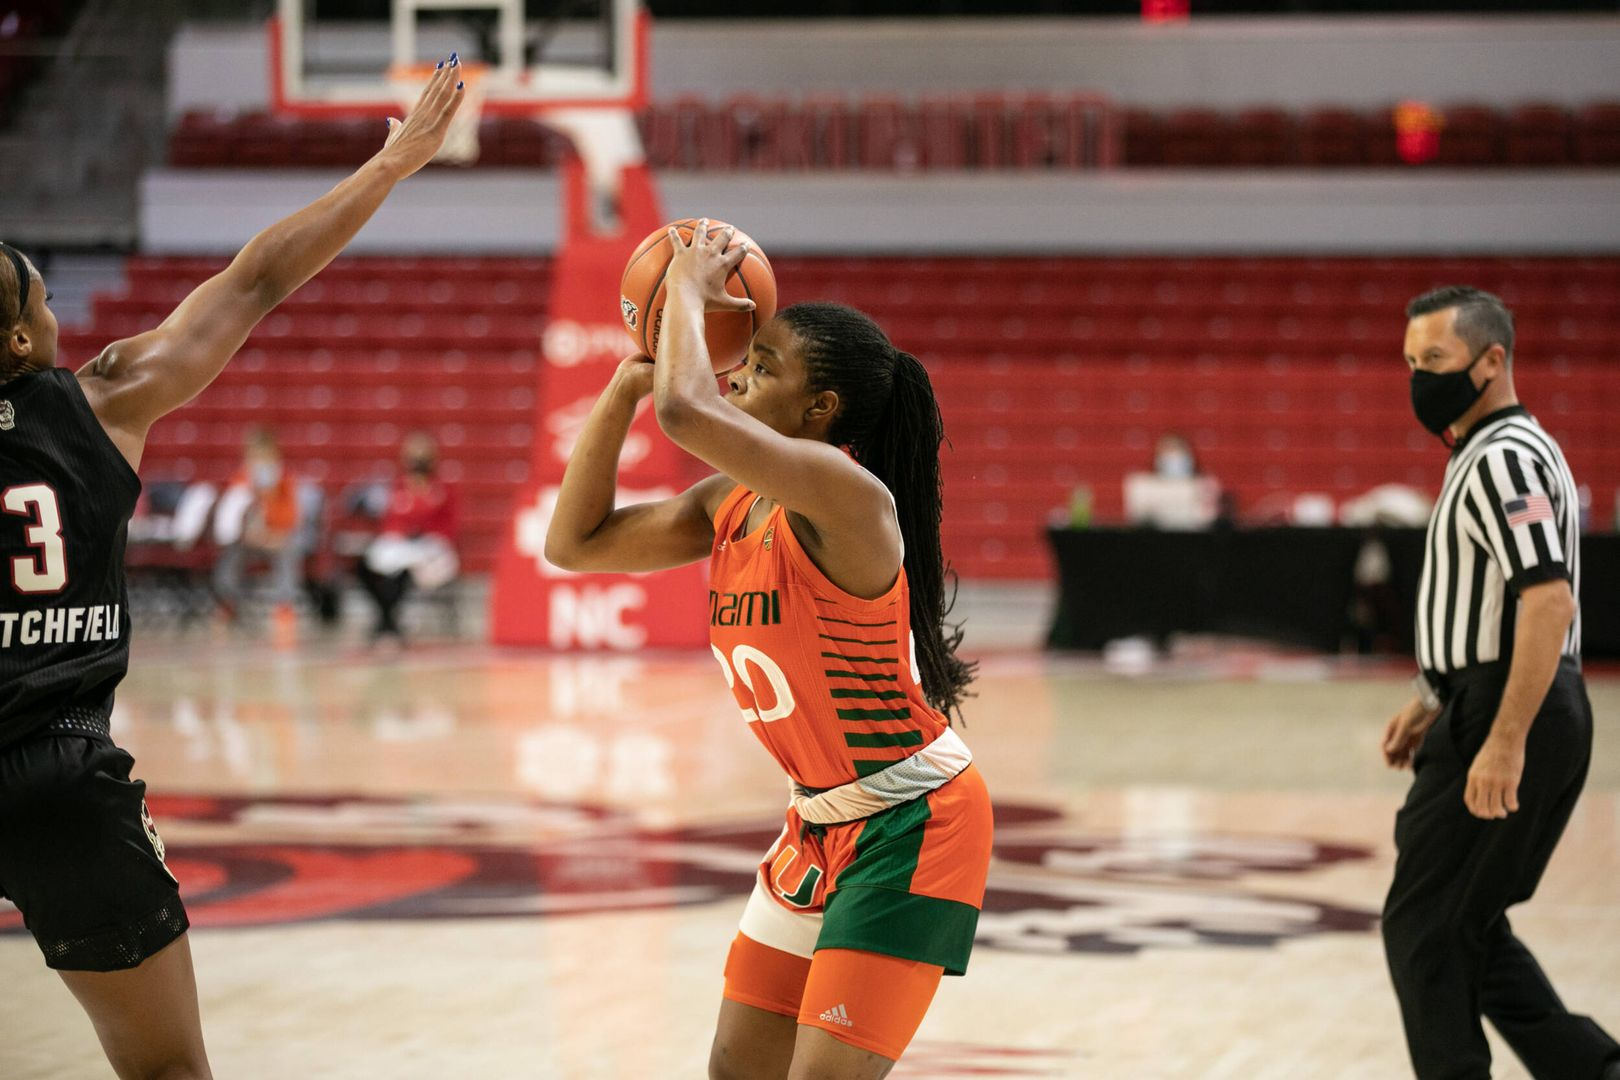 Canes Fall to Wolfpack on the Road